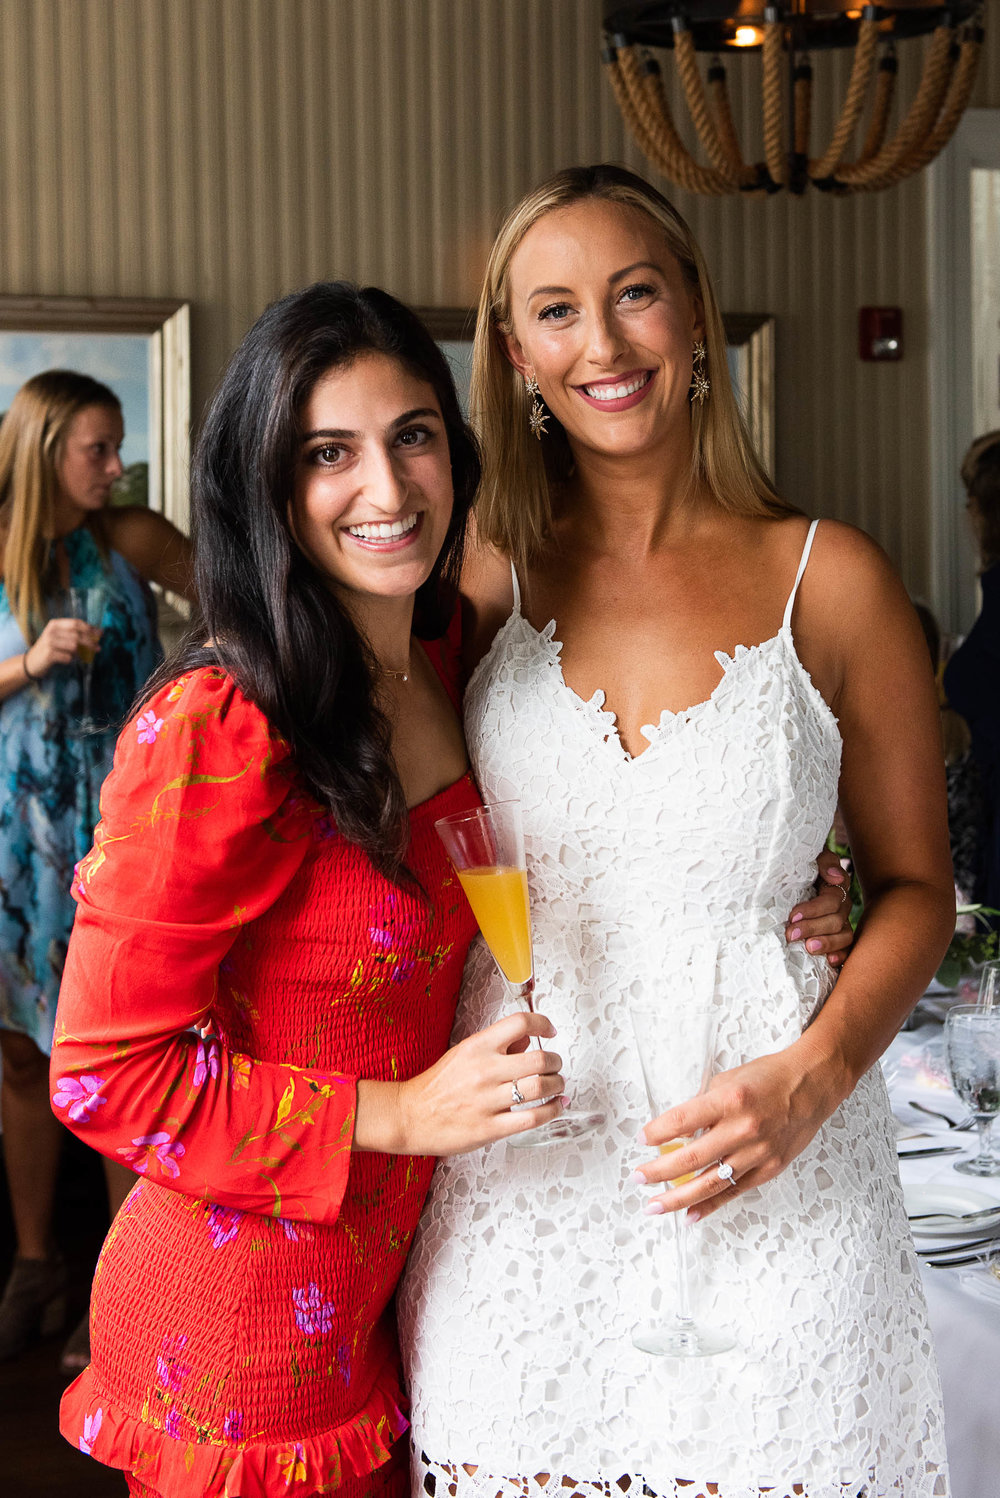 Charleston Event Photography by Event Photographer Reese Moore Photography | Old Village Post House Inn Bridal Luncheon